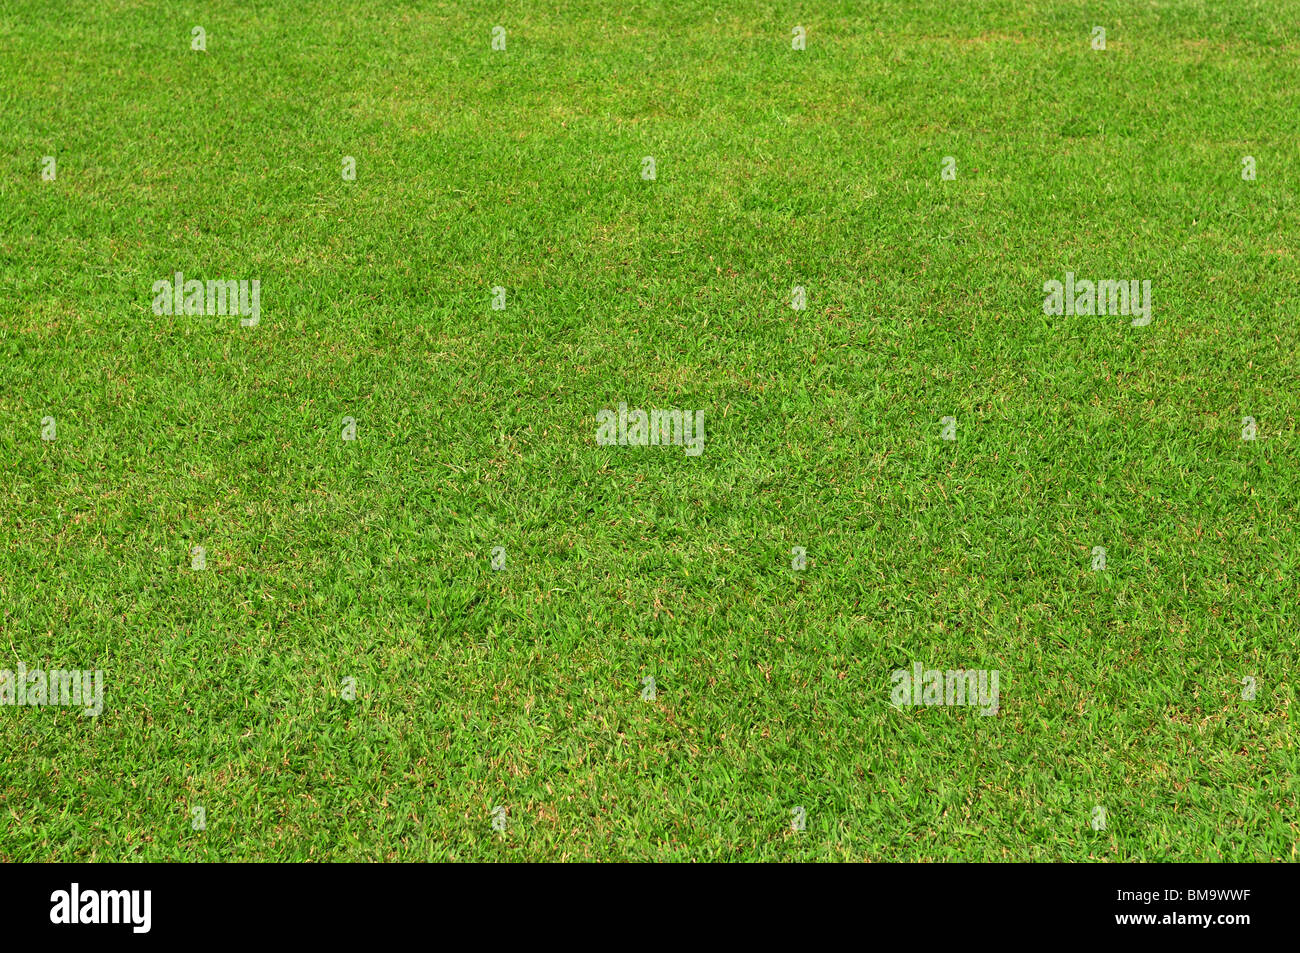 spring green grass texture or background for design - Stock Image